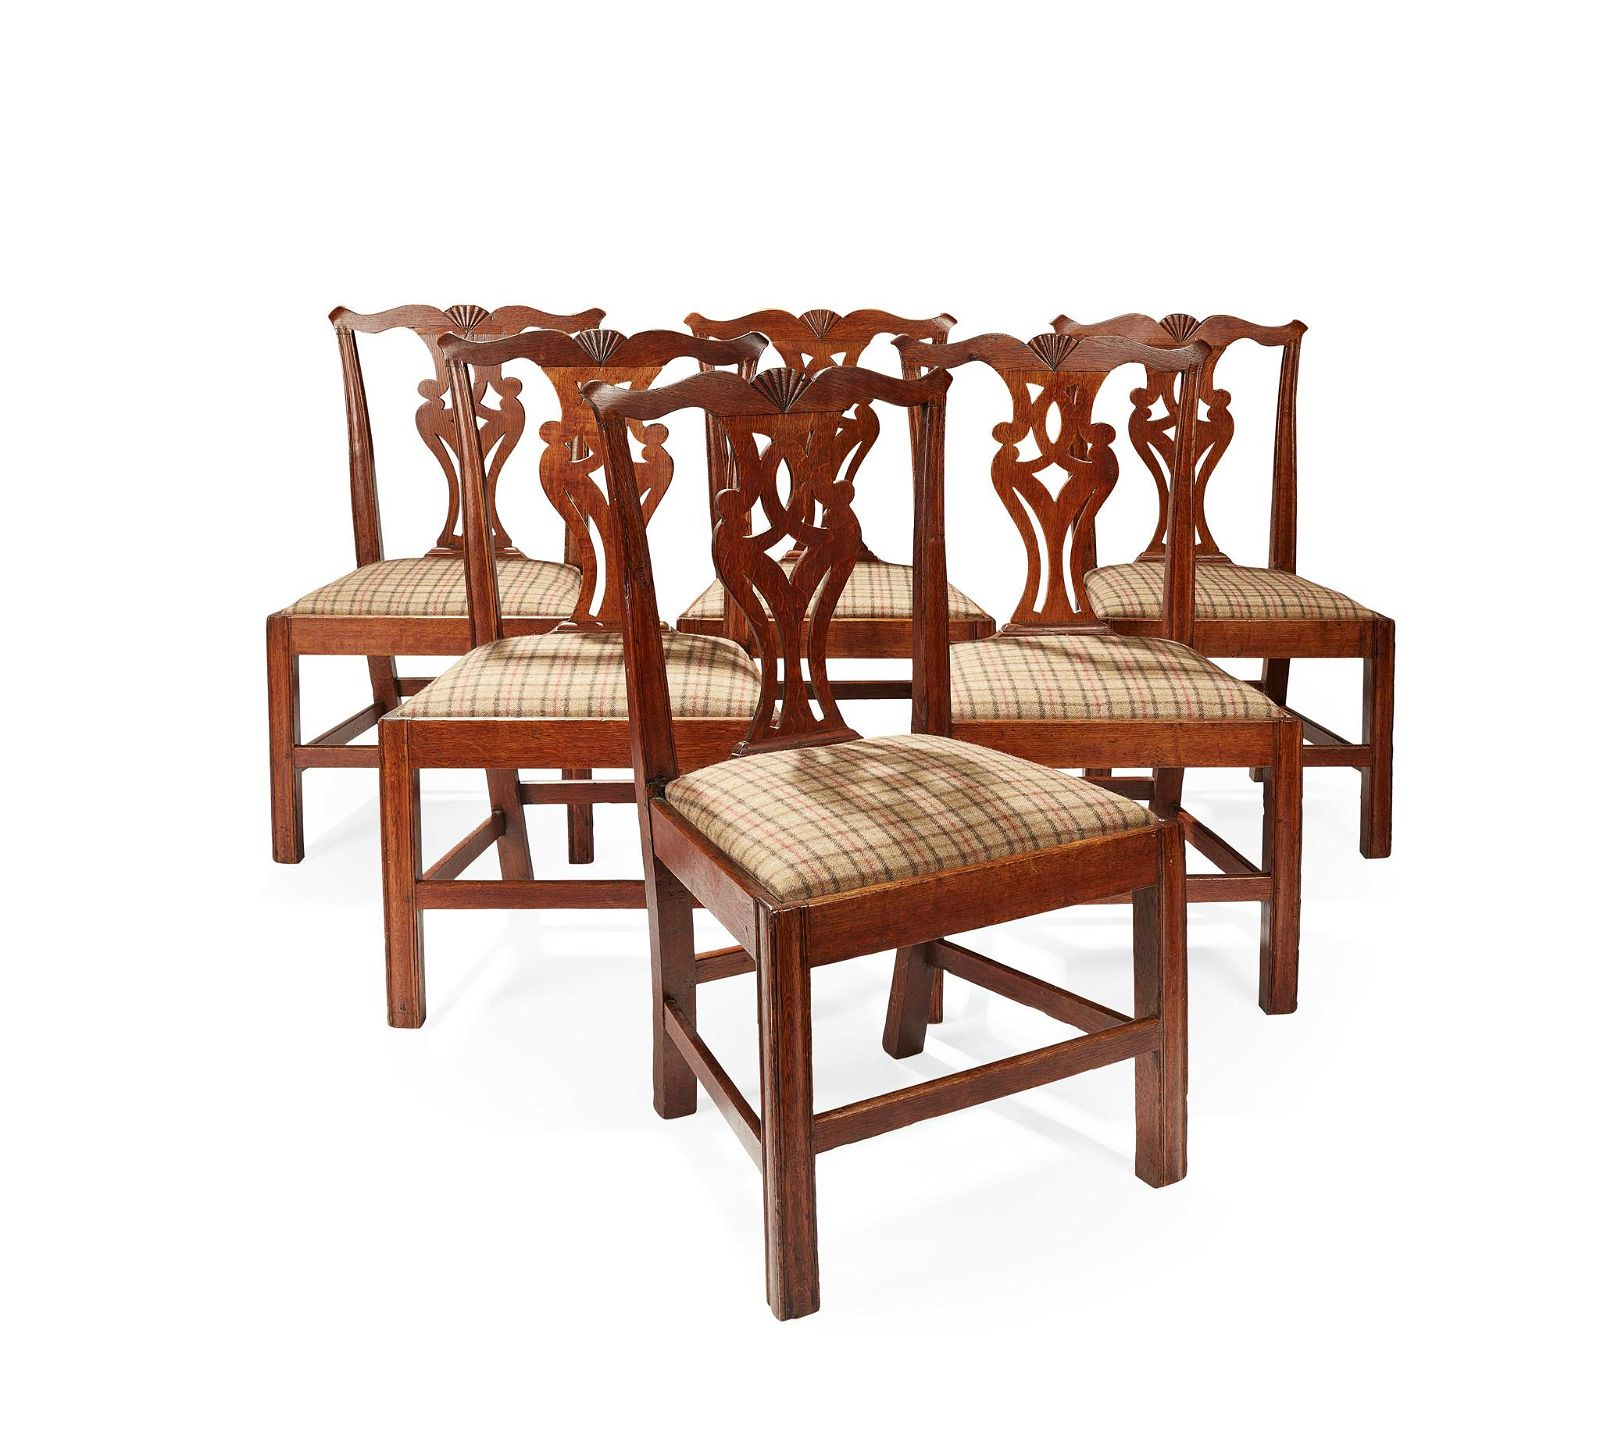 A SET OF SIX DINING CHAIRS BY WHEELER OF ARNCROACH